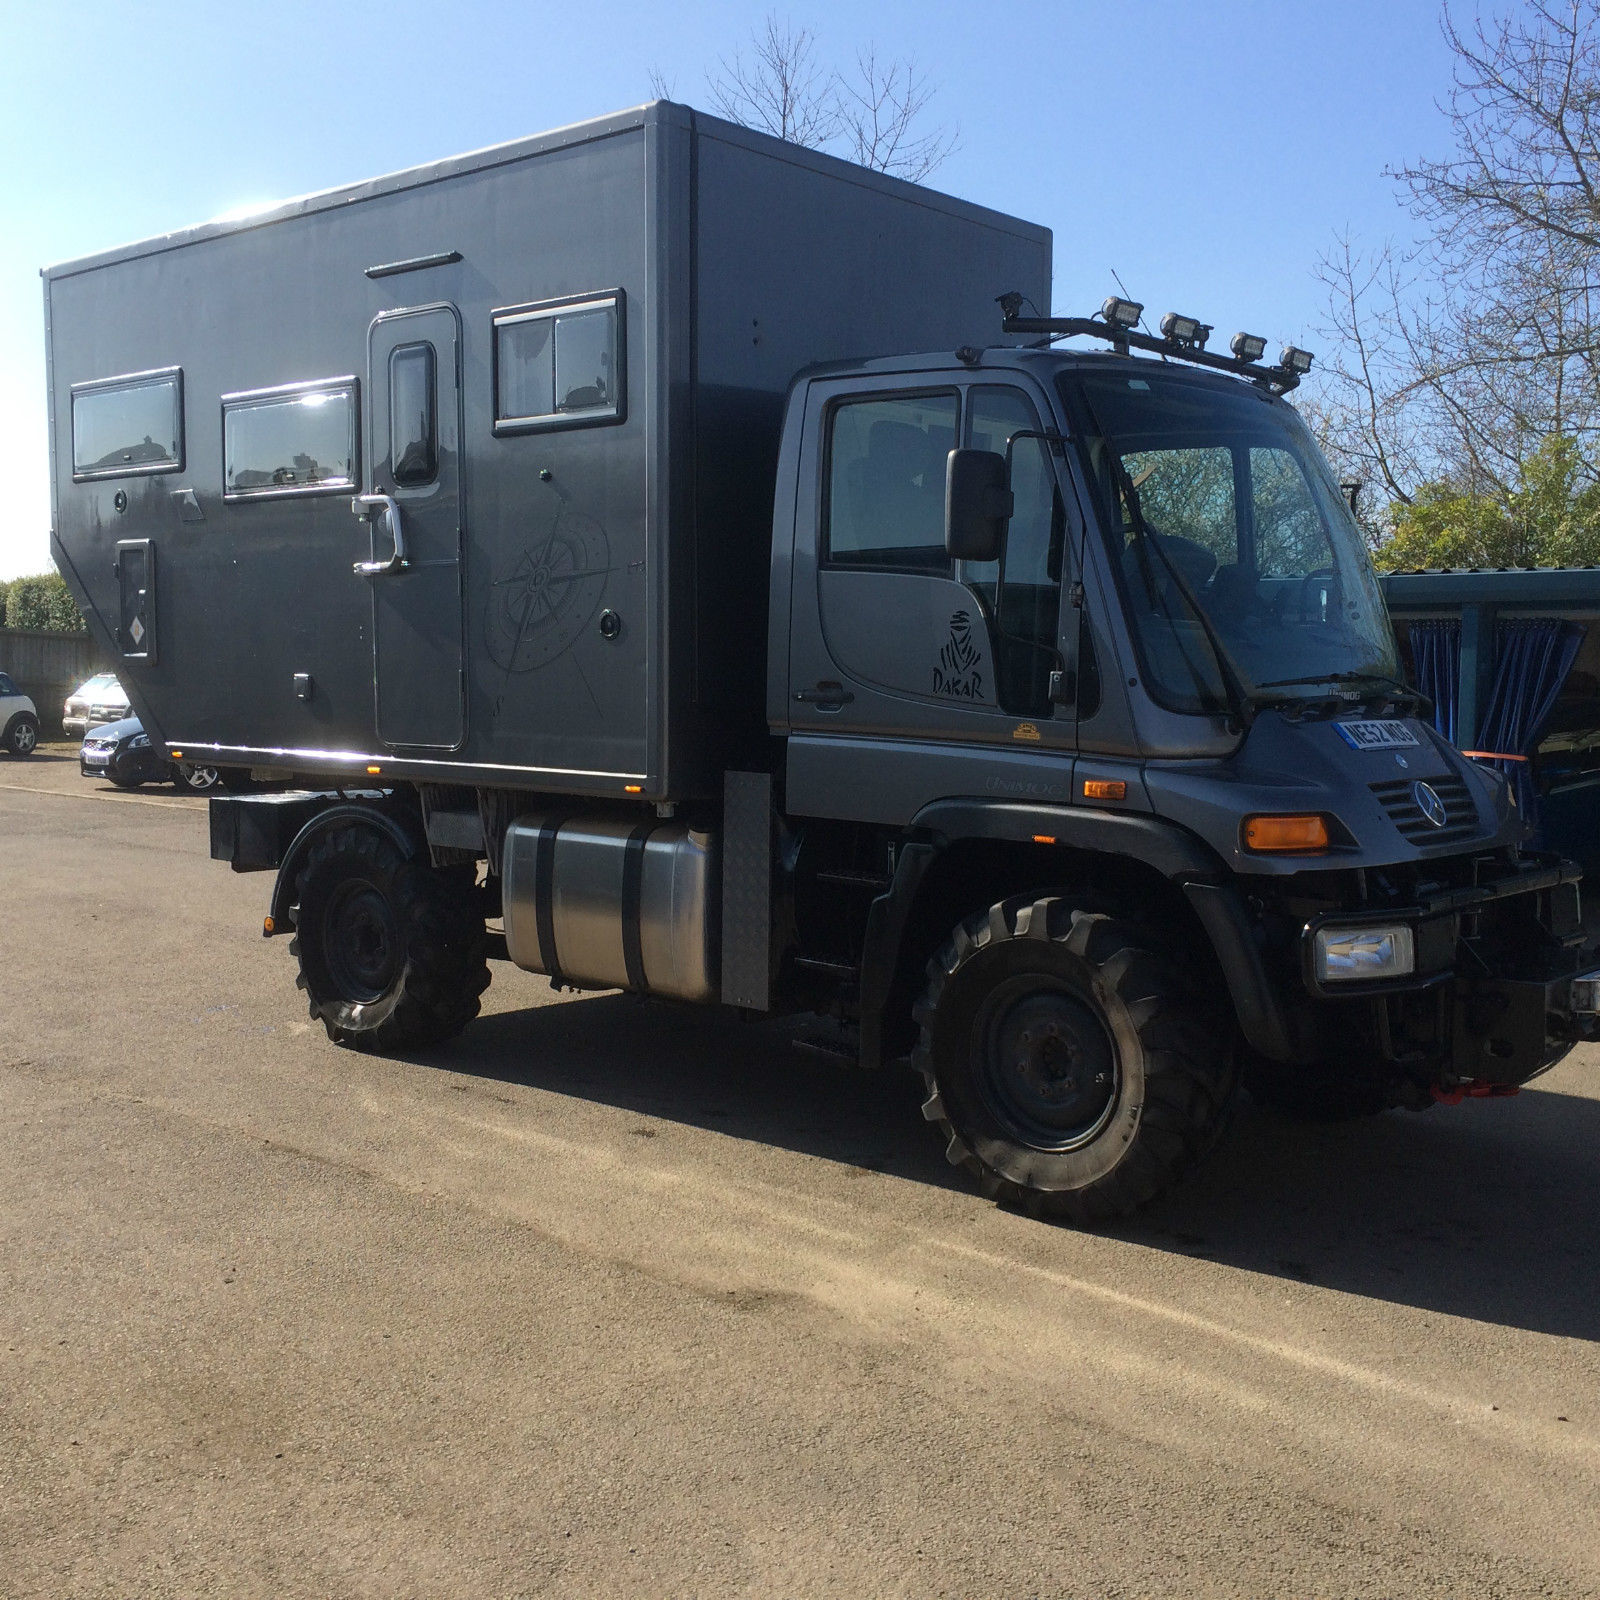 Unimog Archives | Expedition Vehicles For Sale